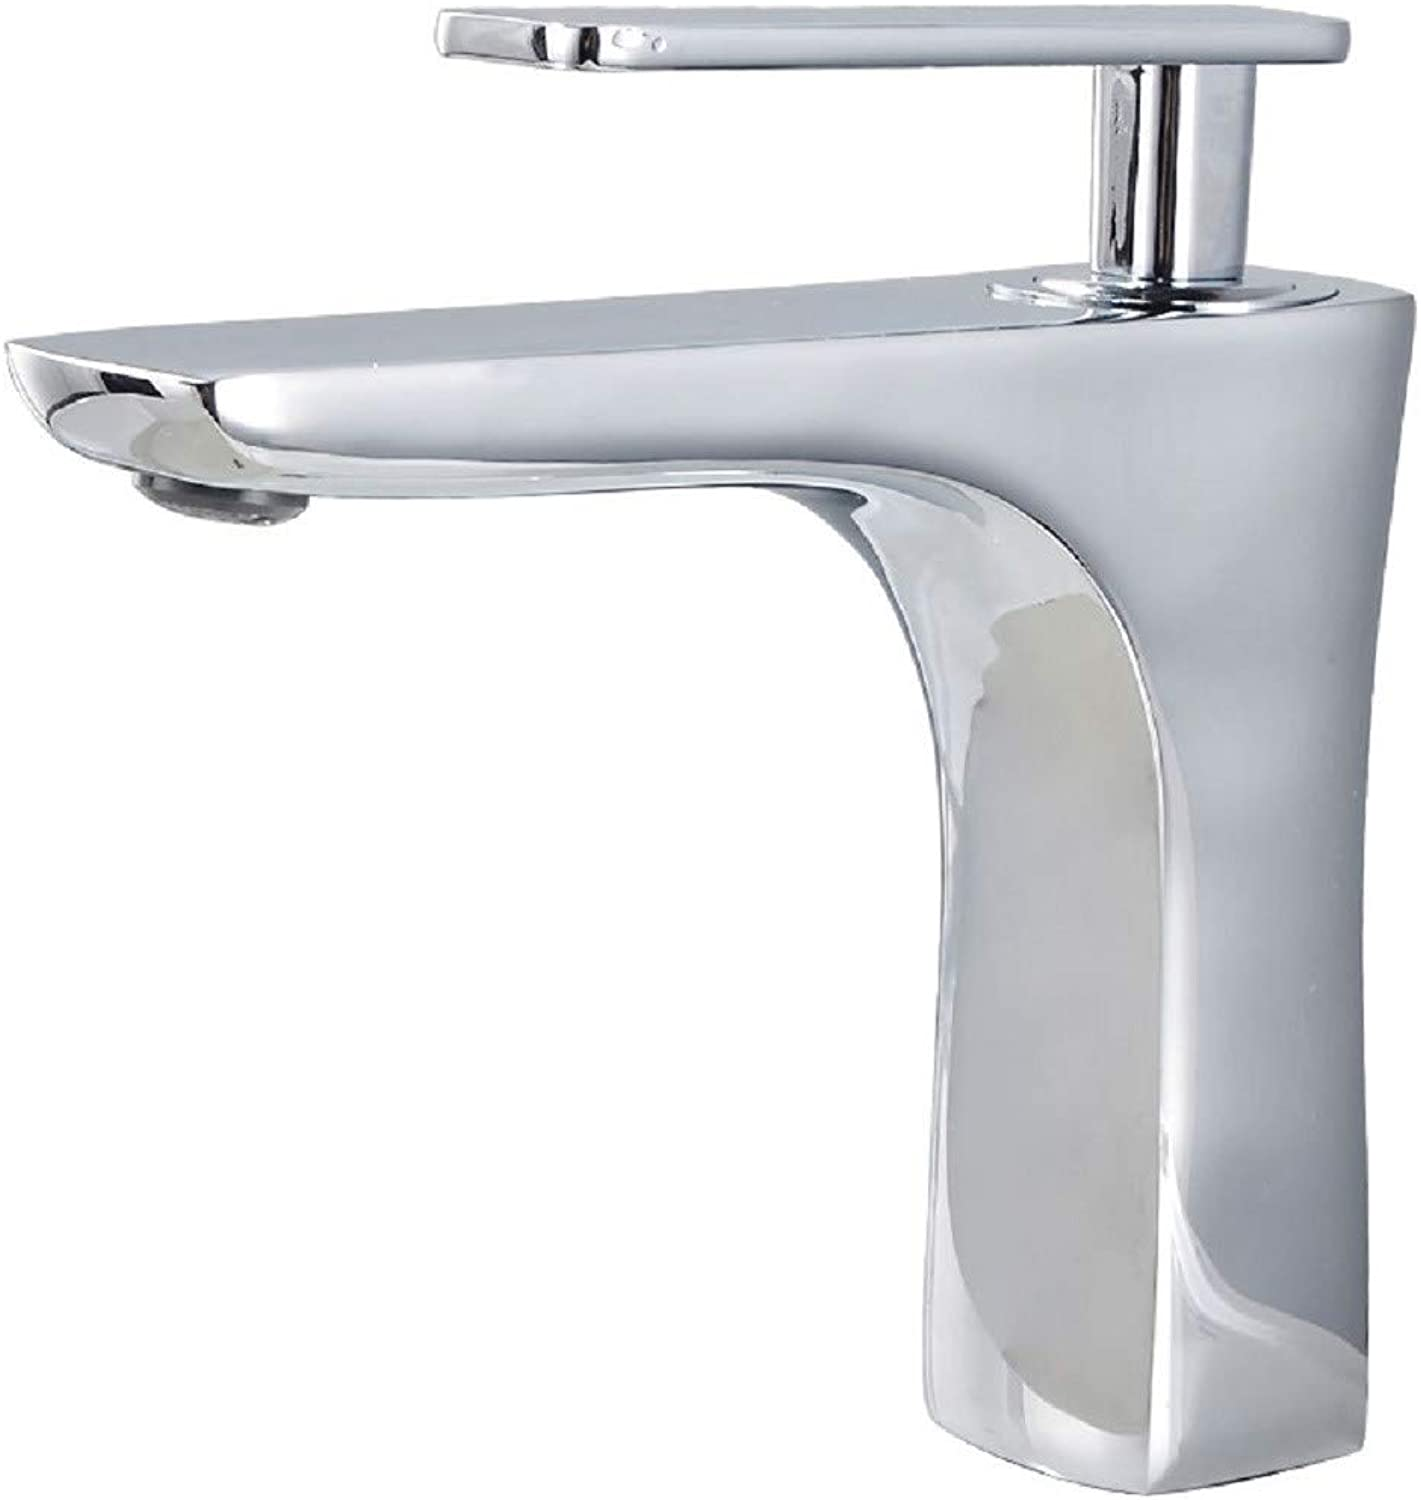 Bathroom Taps Copper Faucet Basin Hot and Cold Bathroom Bathroom Bathroom Sink Bathroom Sink Tap Basin Sink Mixer Tap